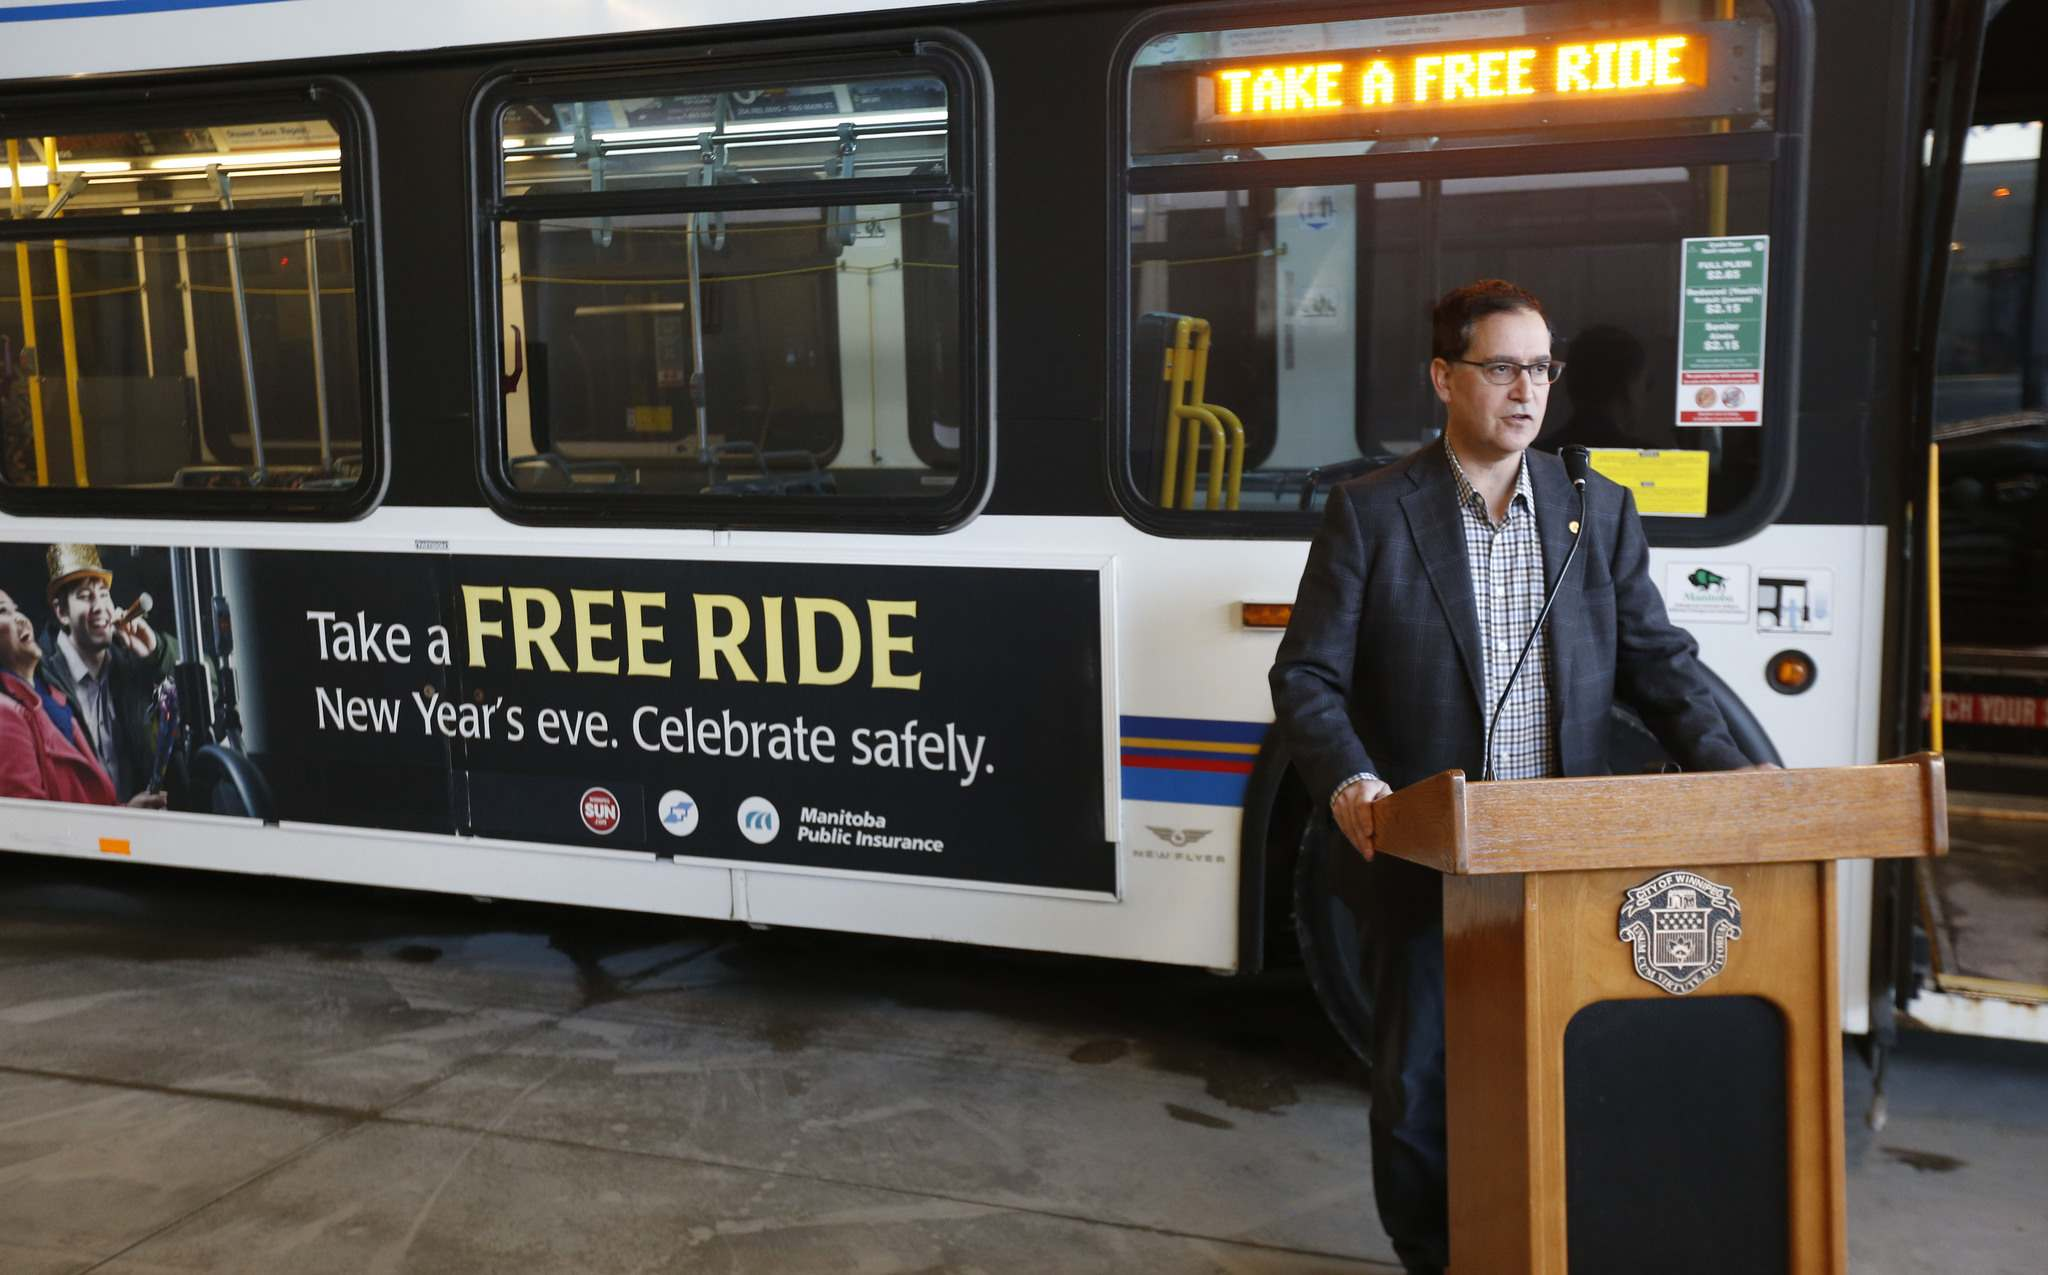 WAYNE GLOWACKI / WINNIPEG FREE PRESS FILES</p><p>City Councillor Marty Morantz at a Winnipeg Transit garage in 2016. Morantz is calling for Transit to increase service on routes with high ridership.</p>